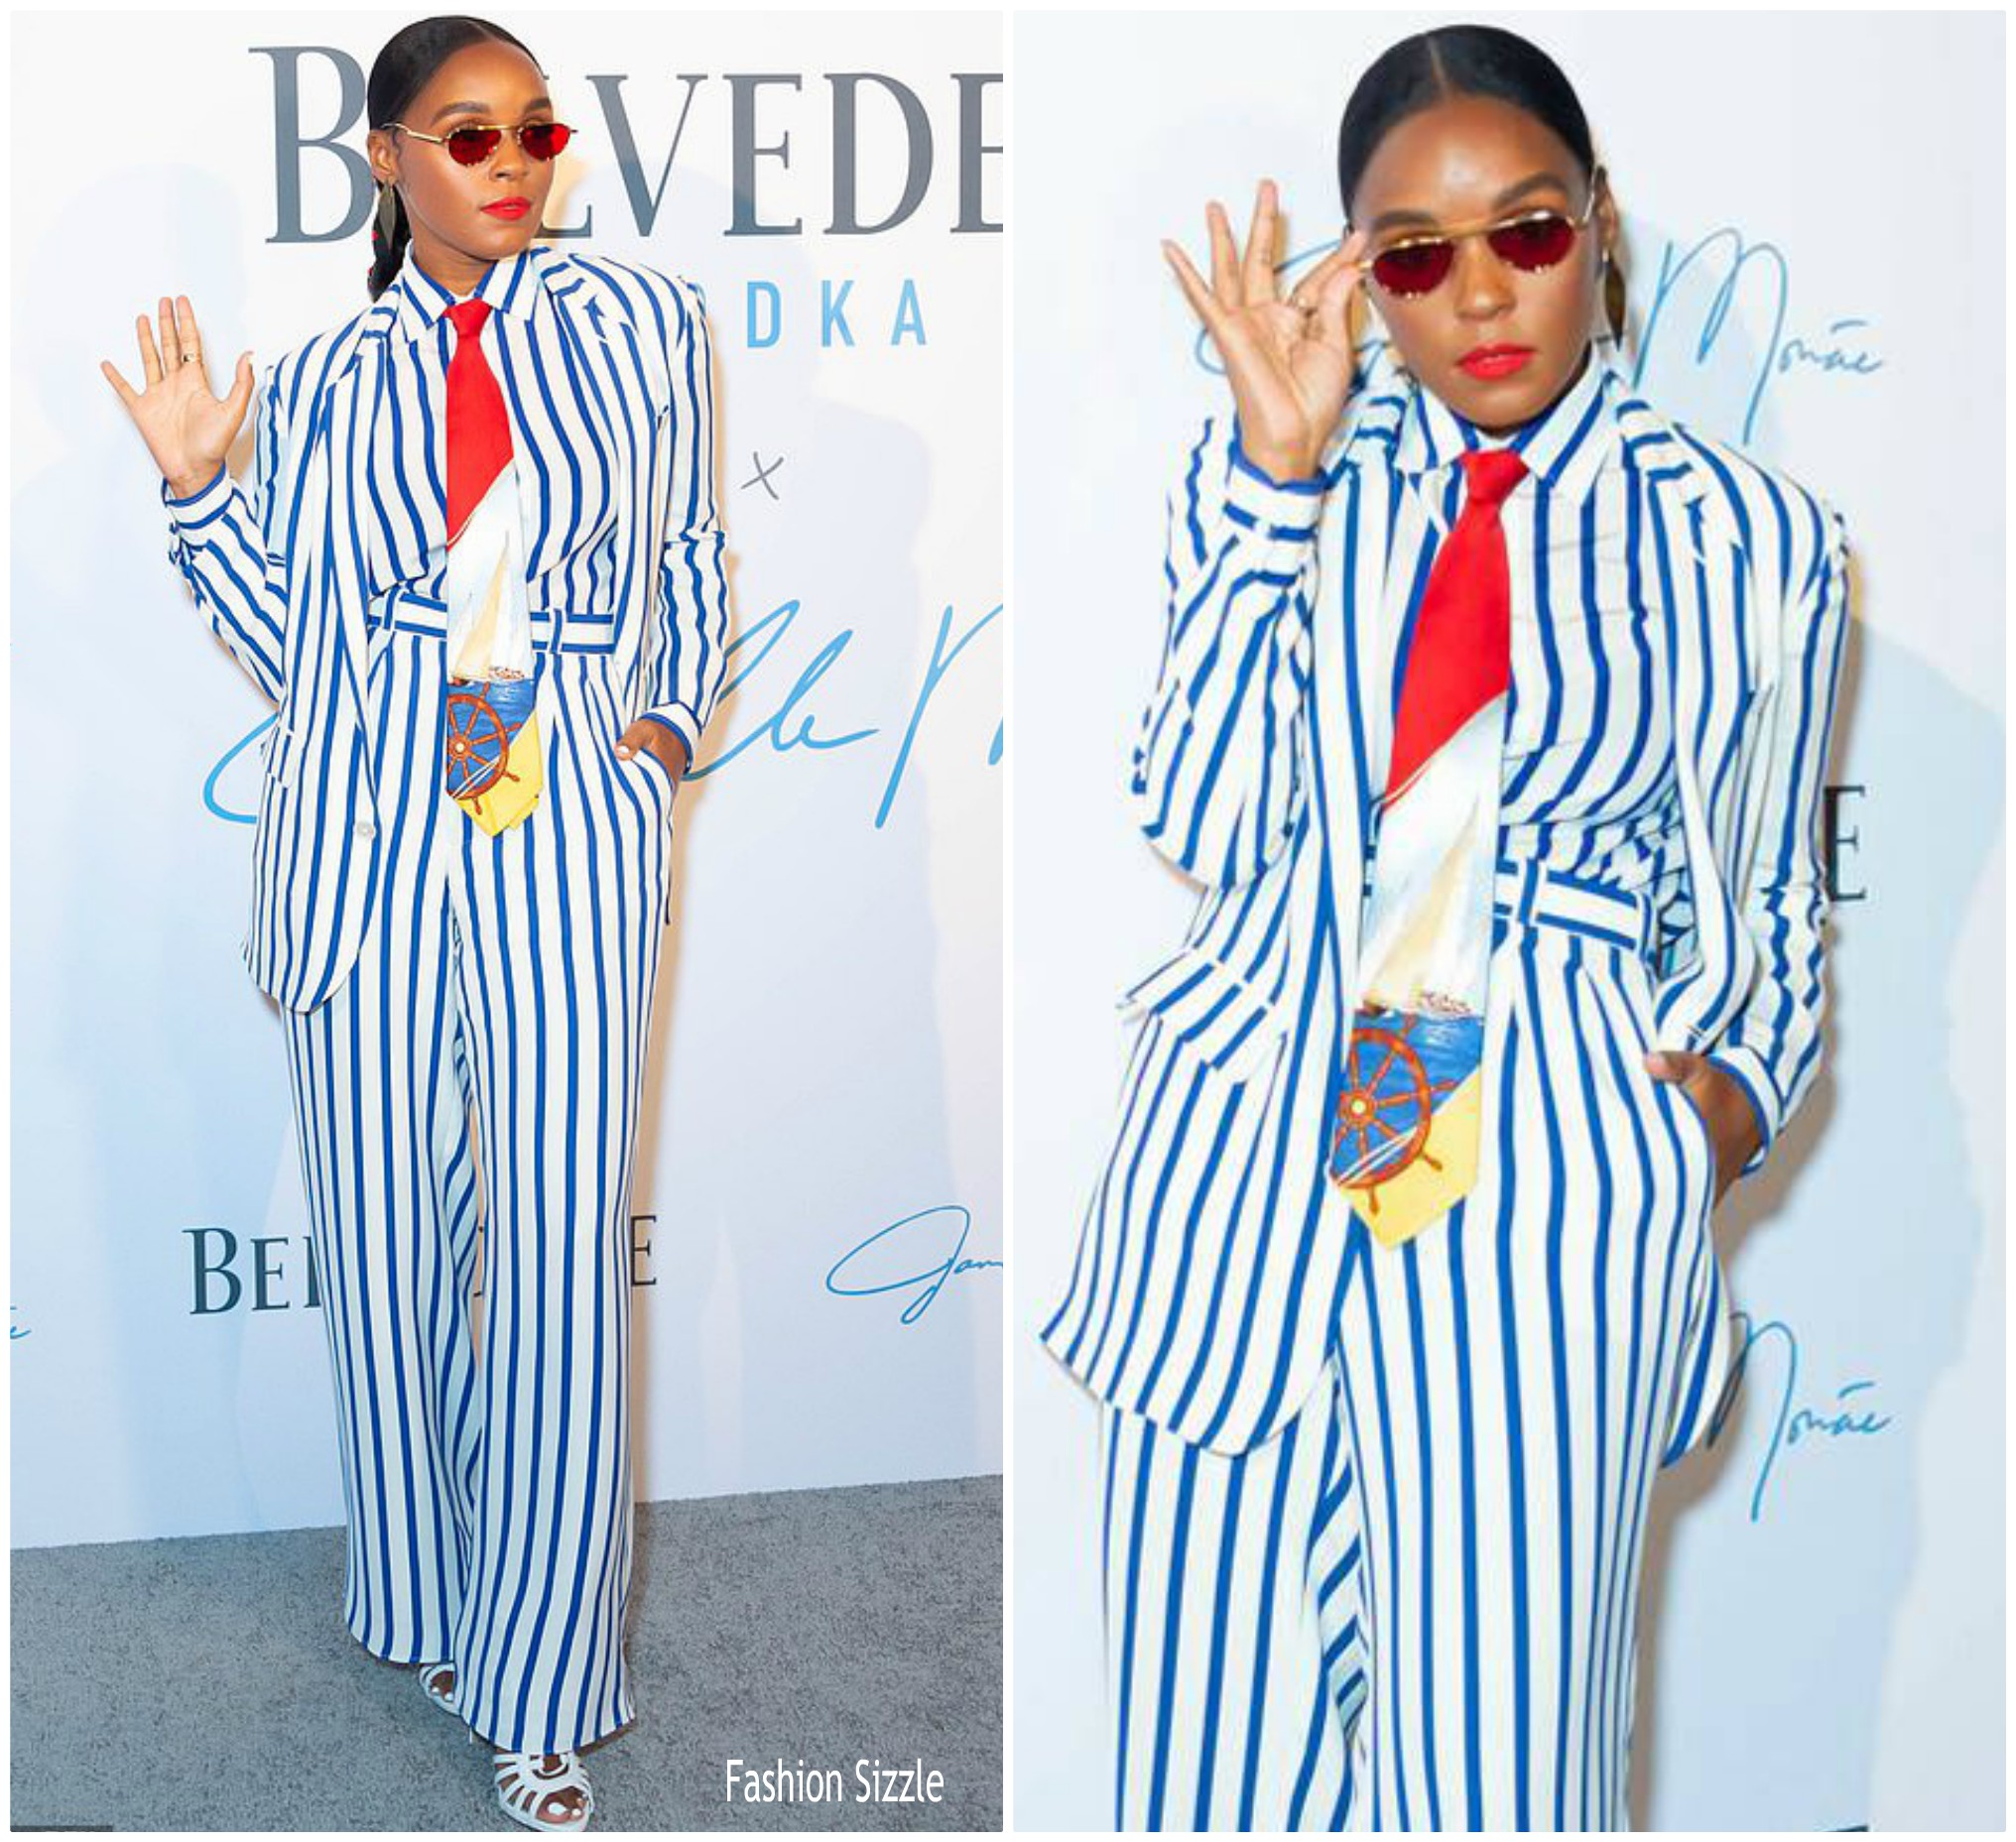 janelle-monae-in-ralph-lauren-a-beautiful-future-event-in-chicago